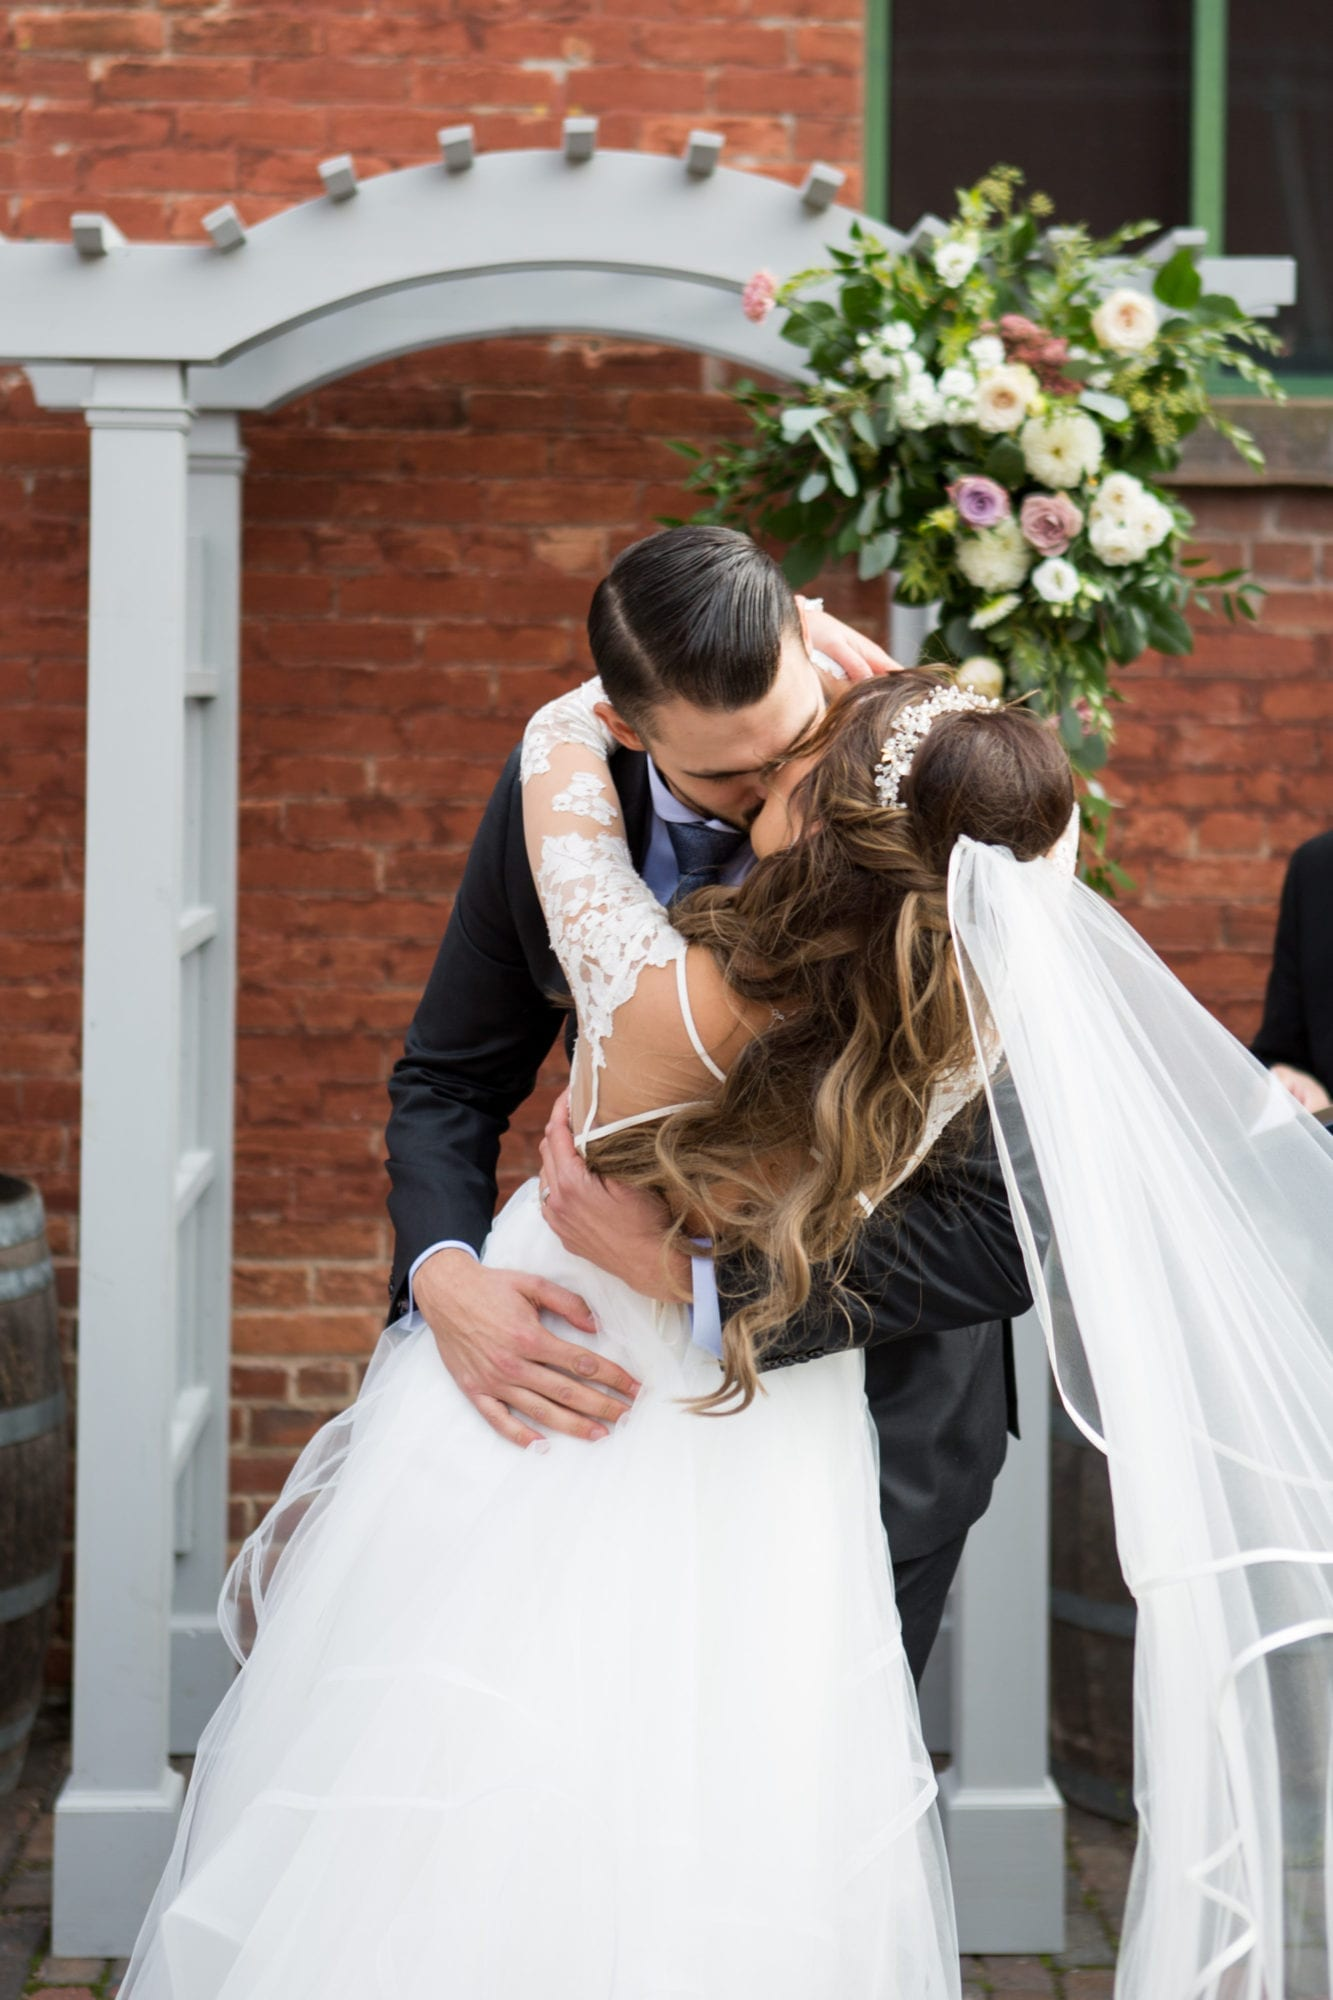 Ceremony Kiss Bride Groom Toronto Wedding Zsuzsi Pal Photography